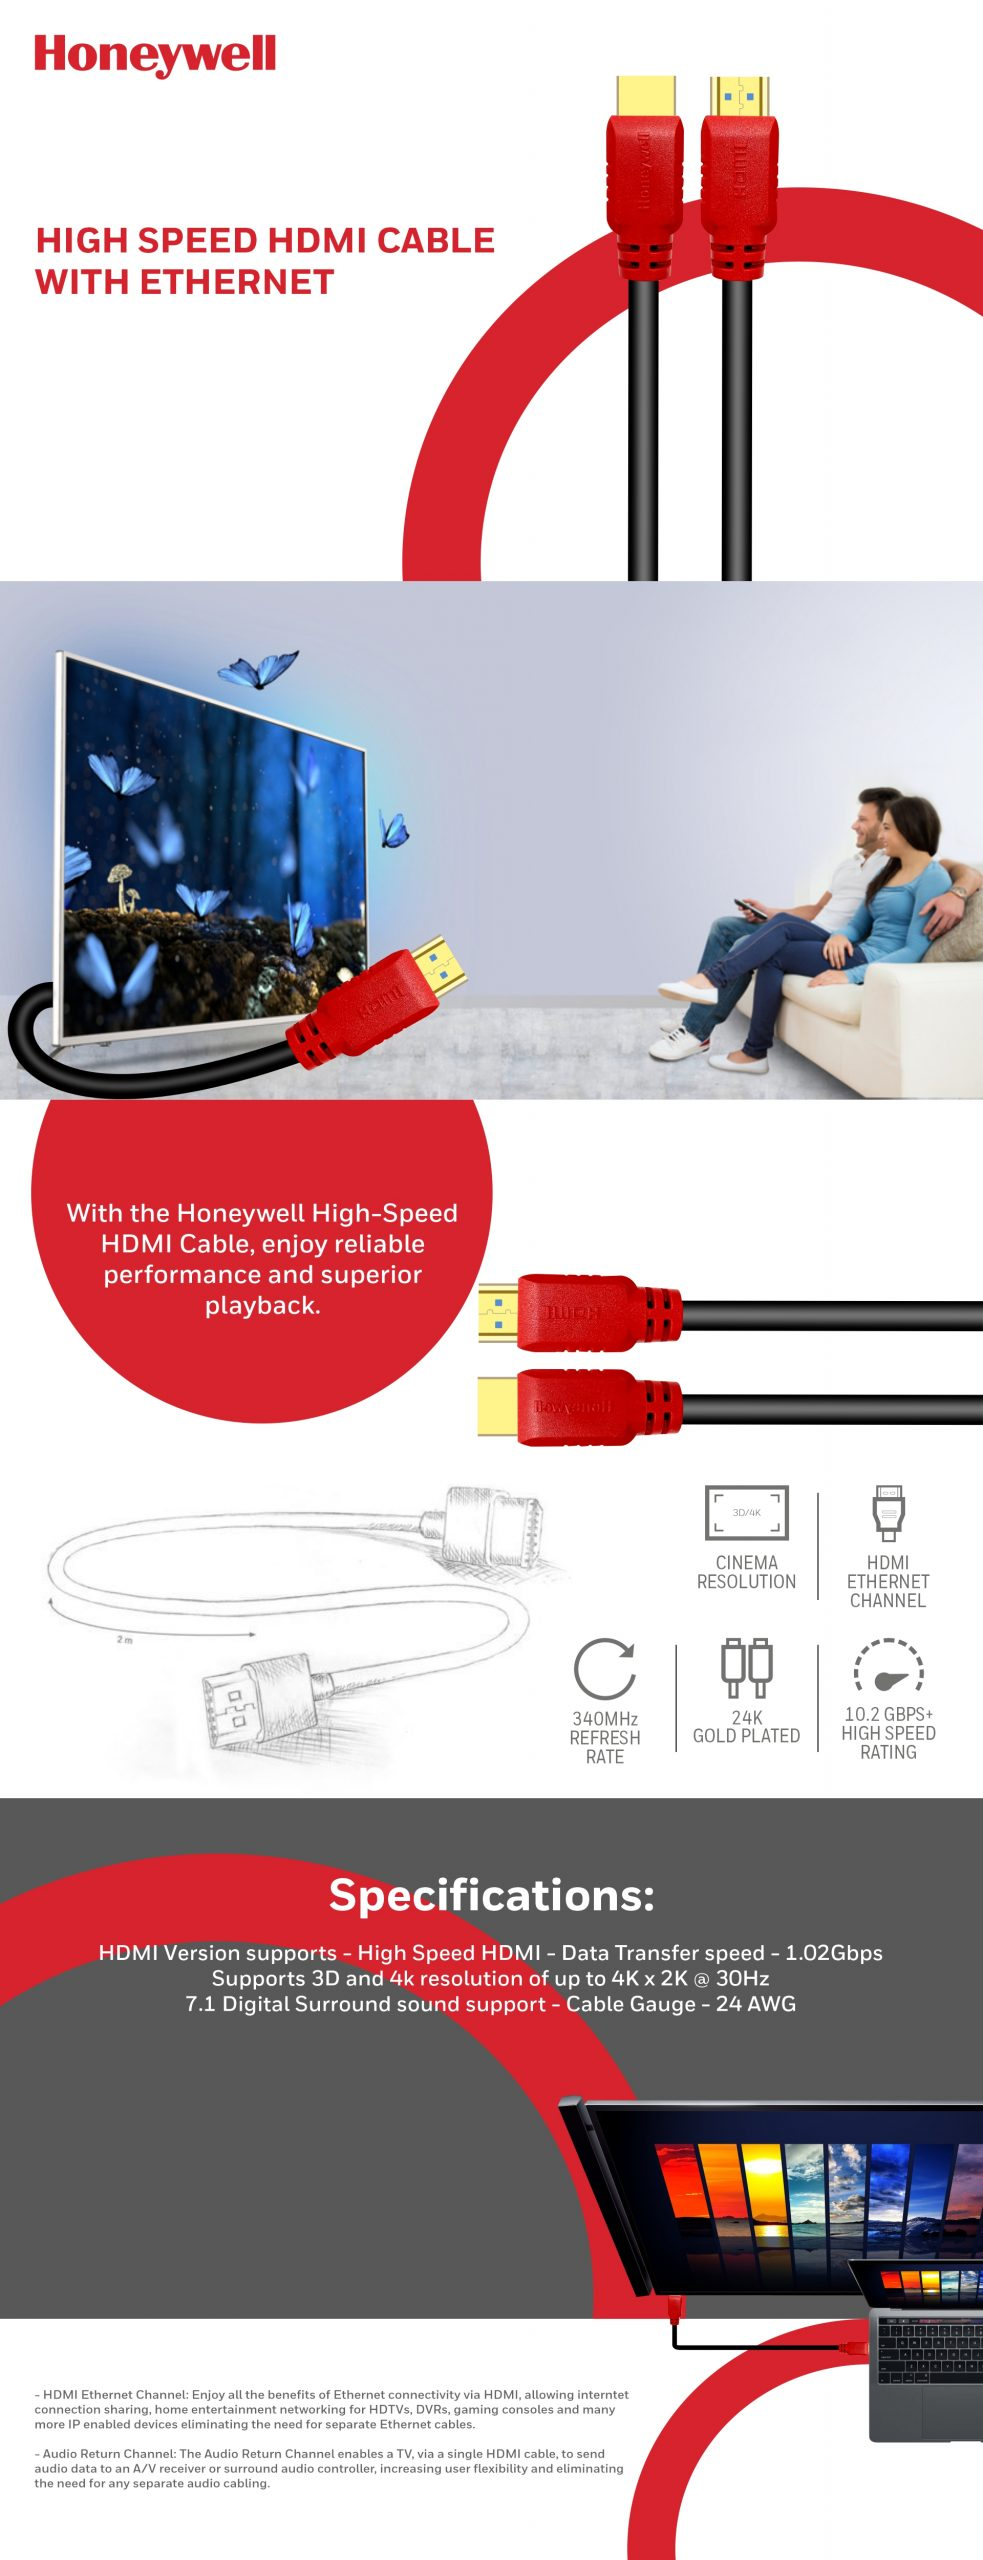 Honeywell High Speed HDMI 1.4 Cable 3 Meter with Ethernet